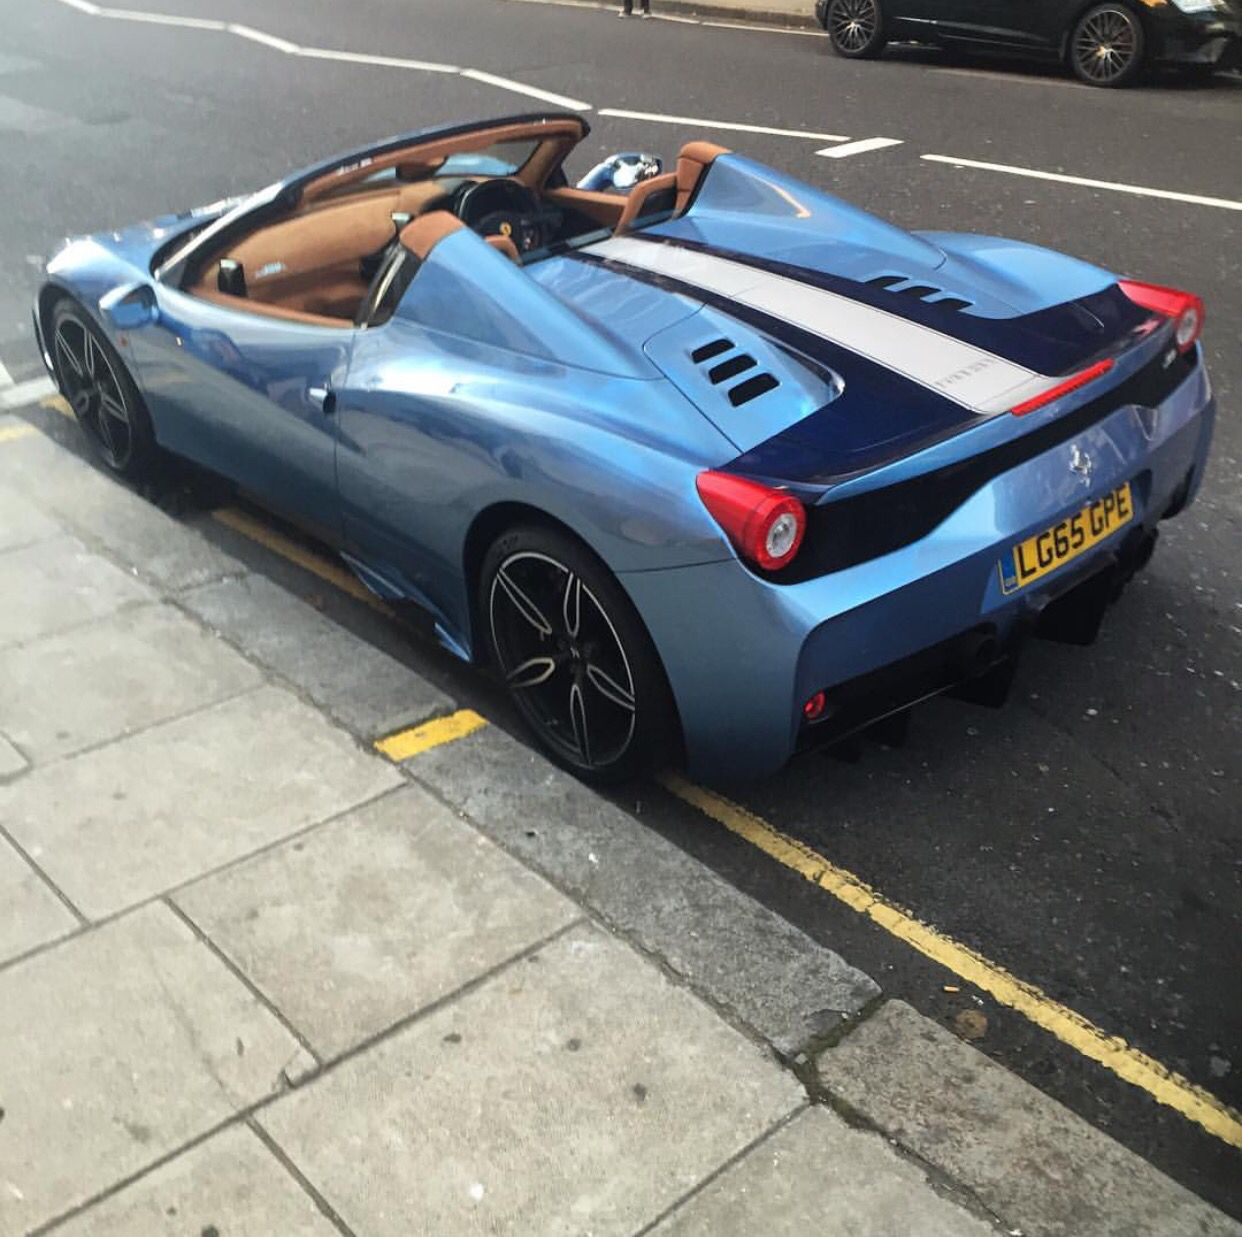 Ferrari 458 Speciale Aperta Painted In Azzurro California